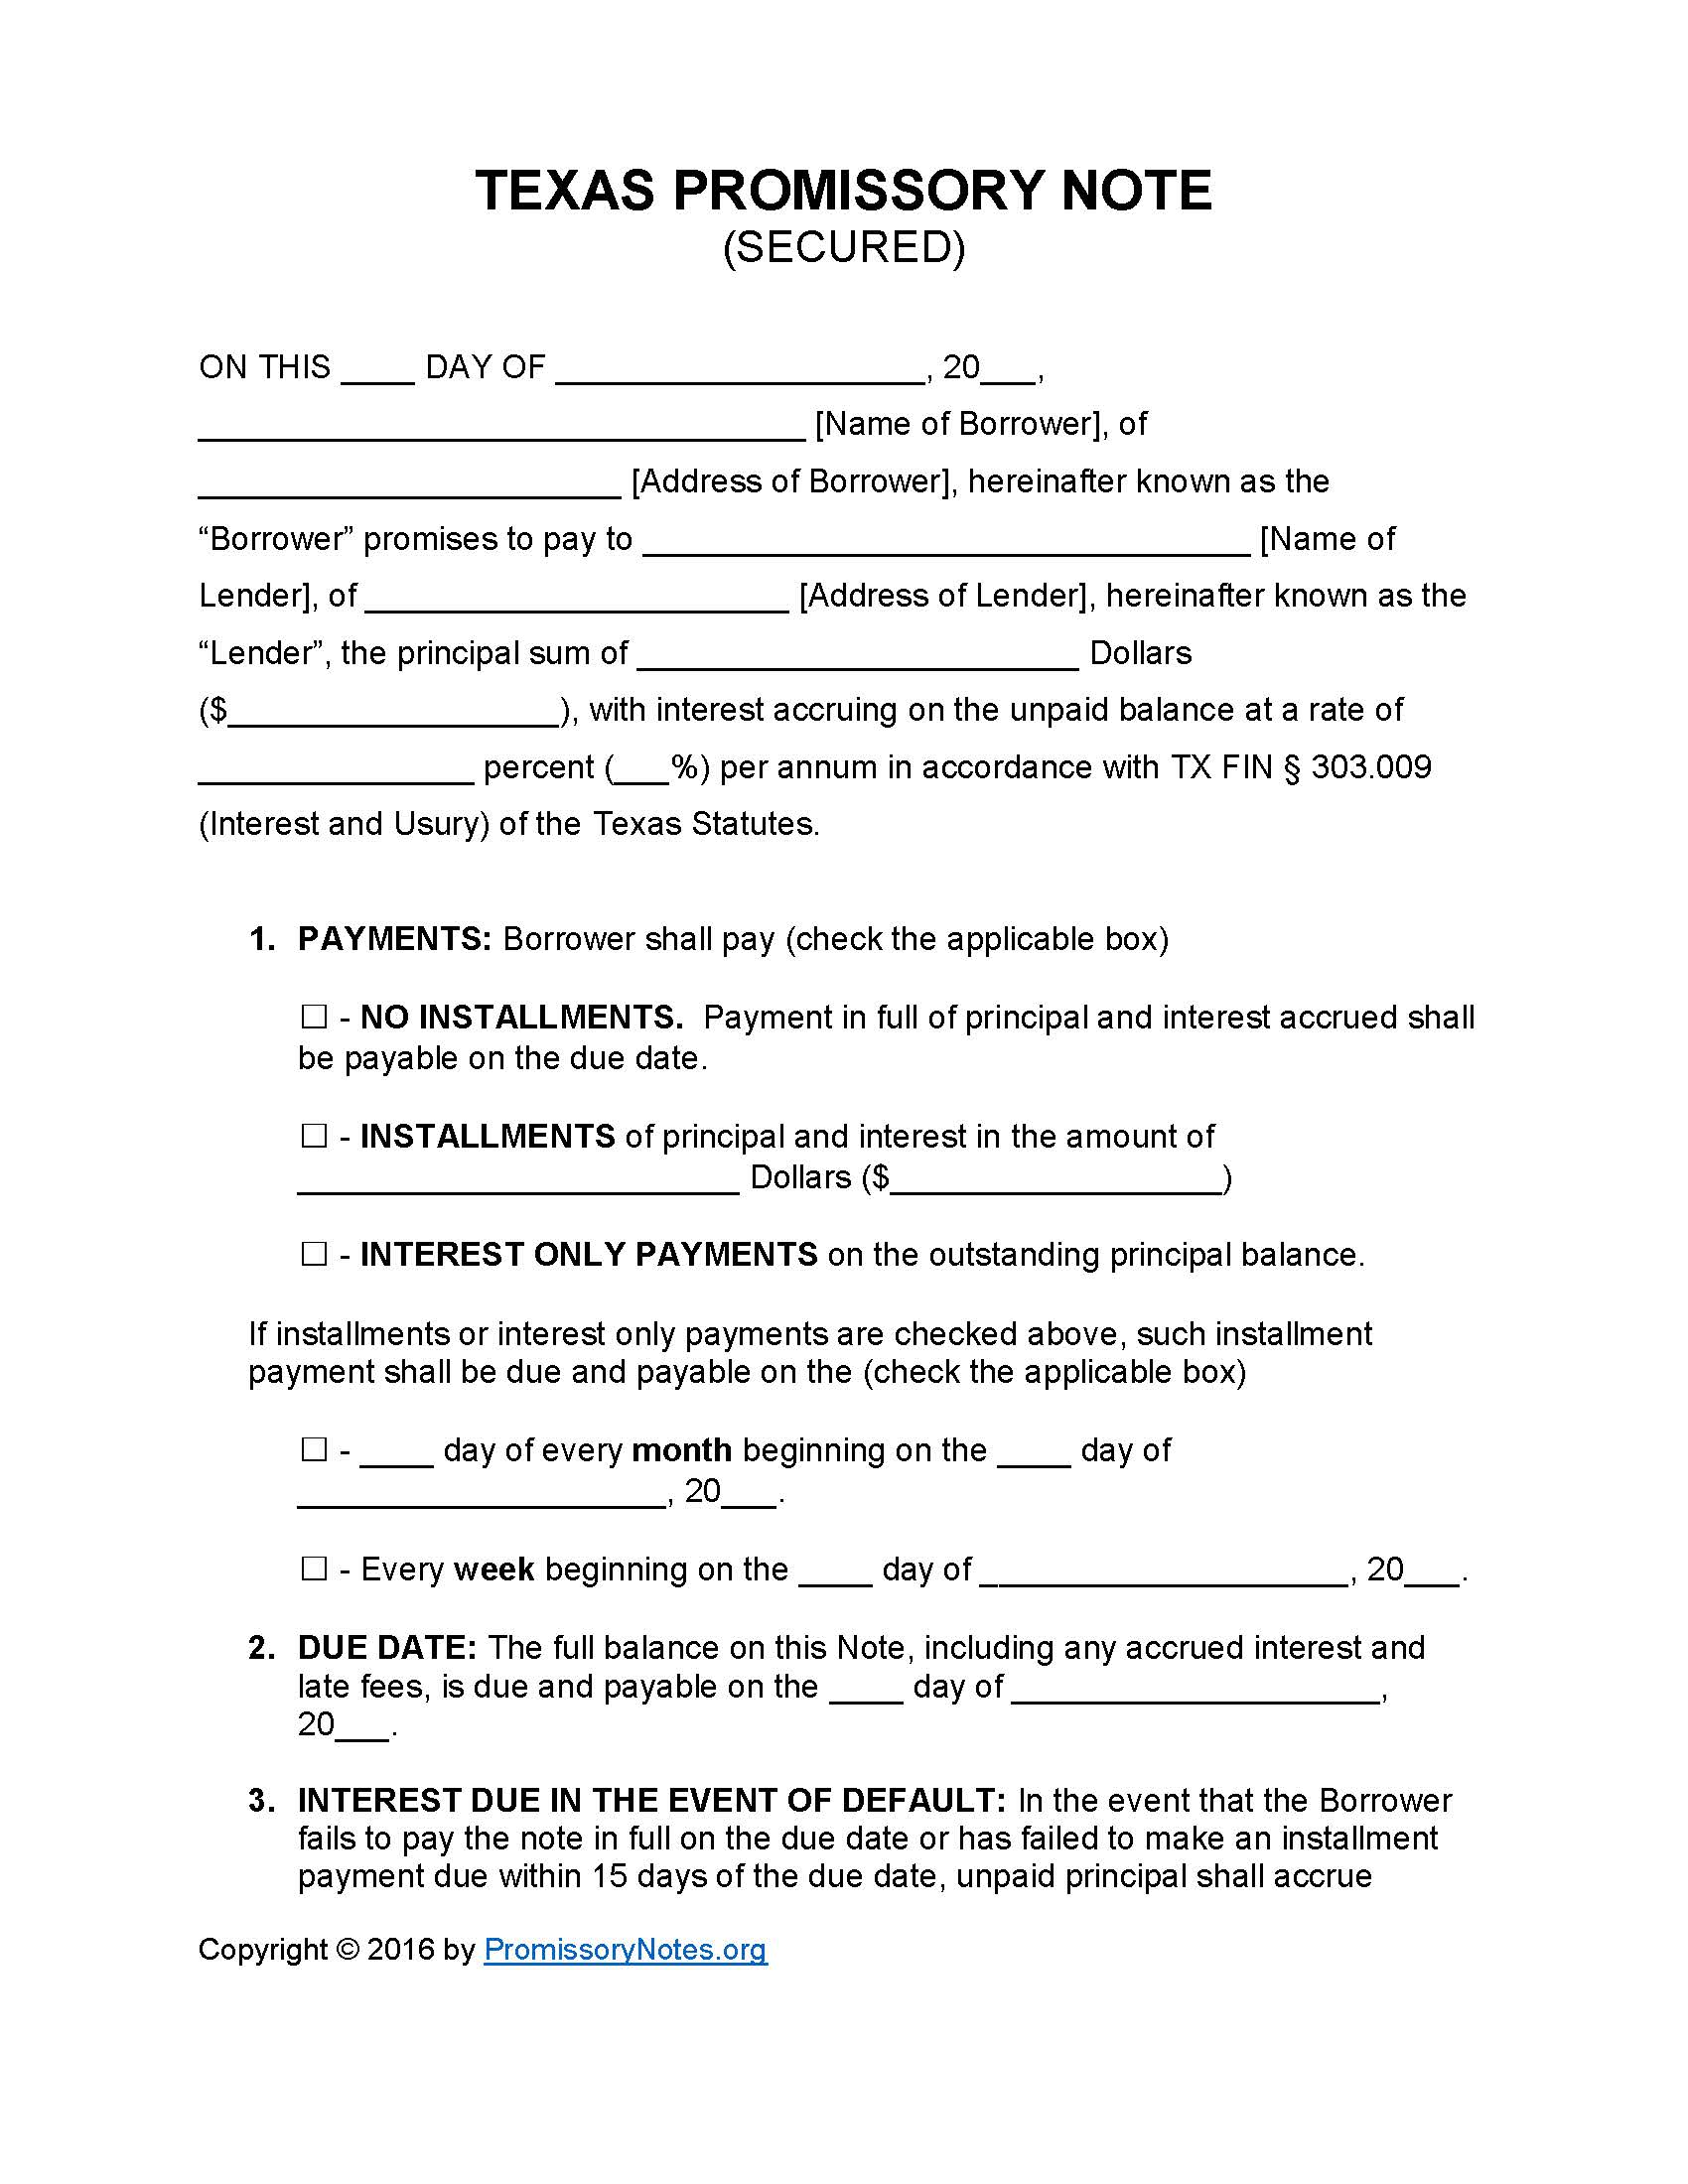 Texas Secured Promissory Note Template Promissory Notes - Promissory note template texas